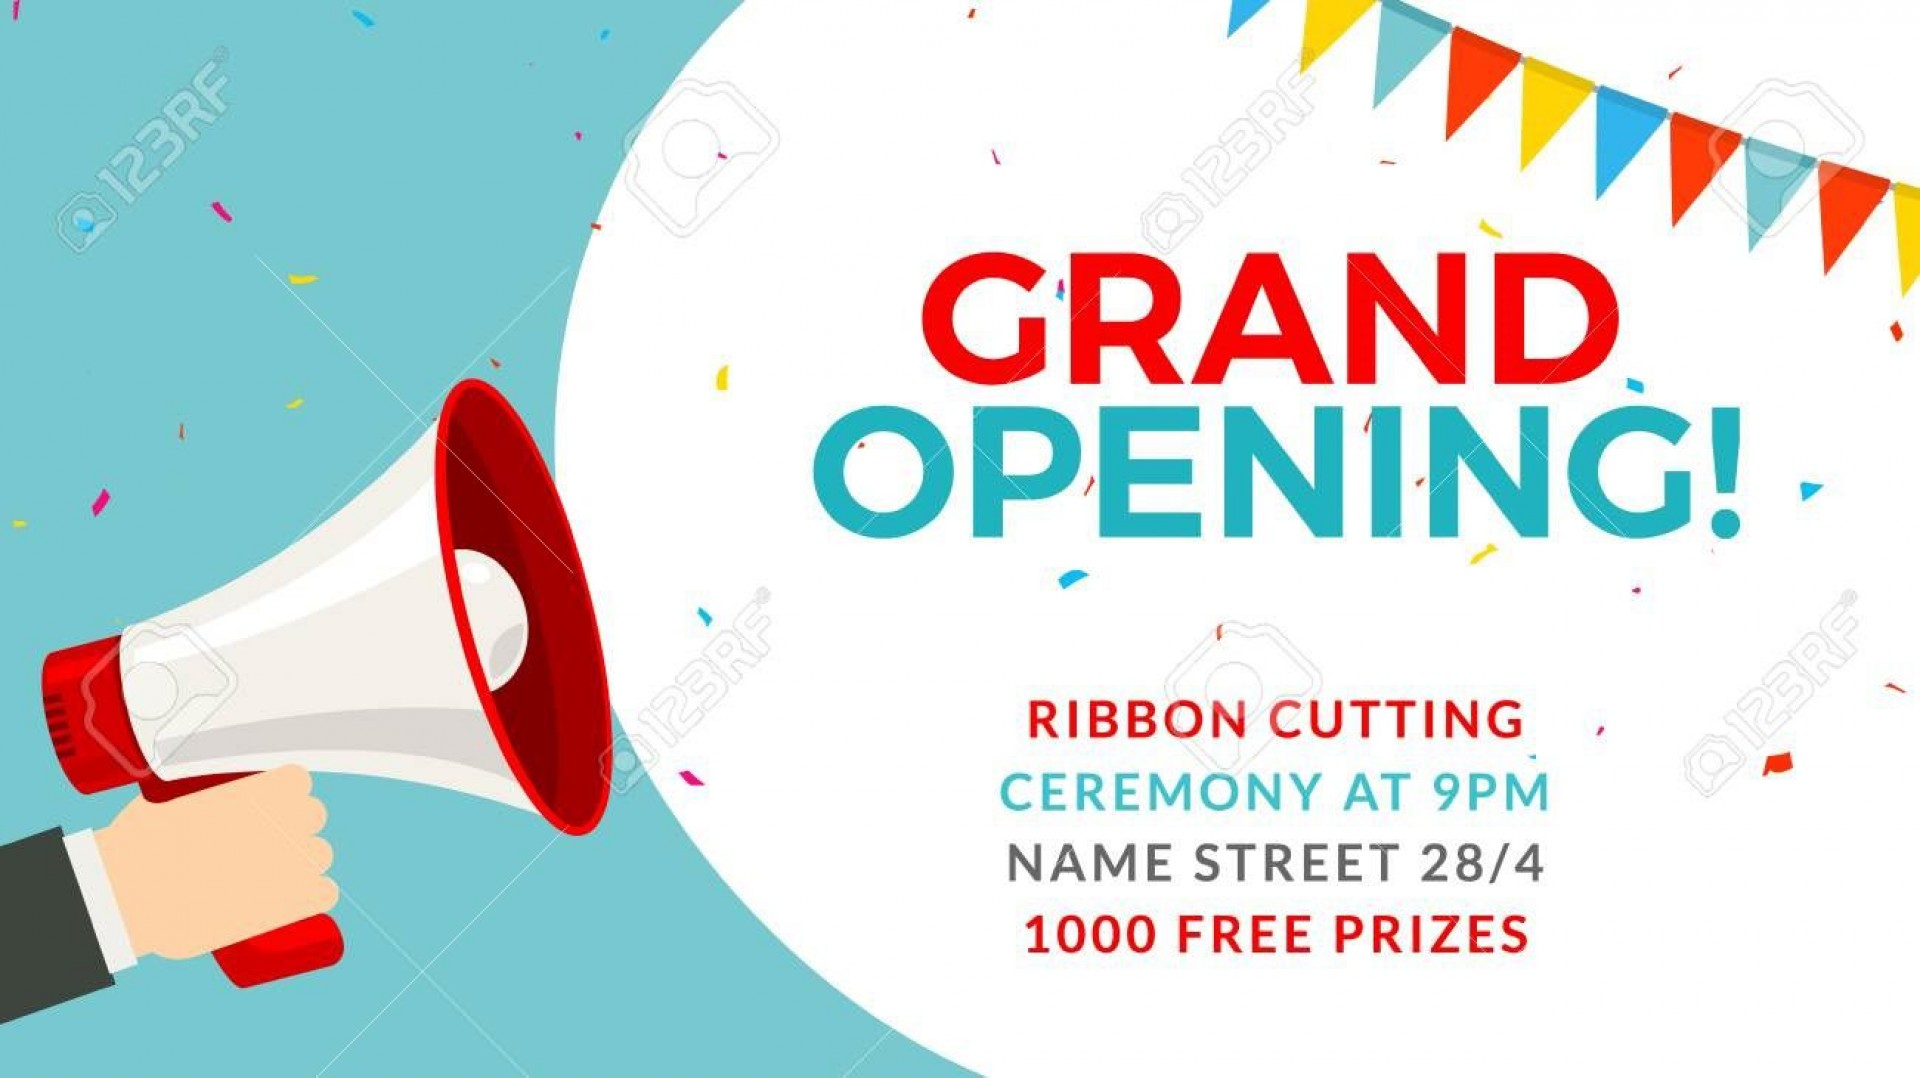 004 Fascinating Grand Opening Flyer Template Inspiration  Free Psd Busines1920